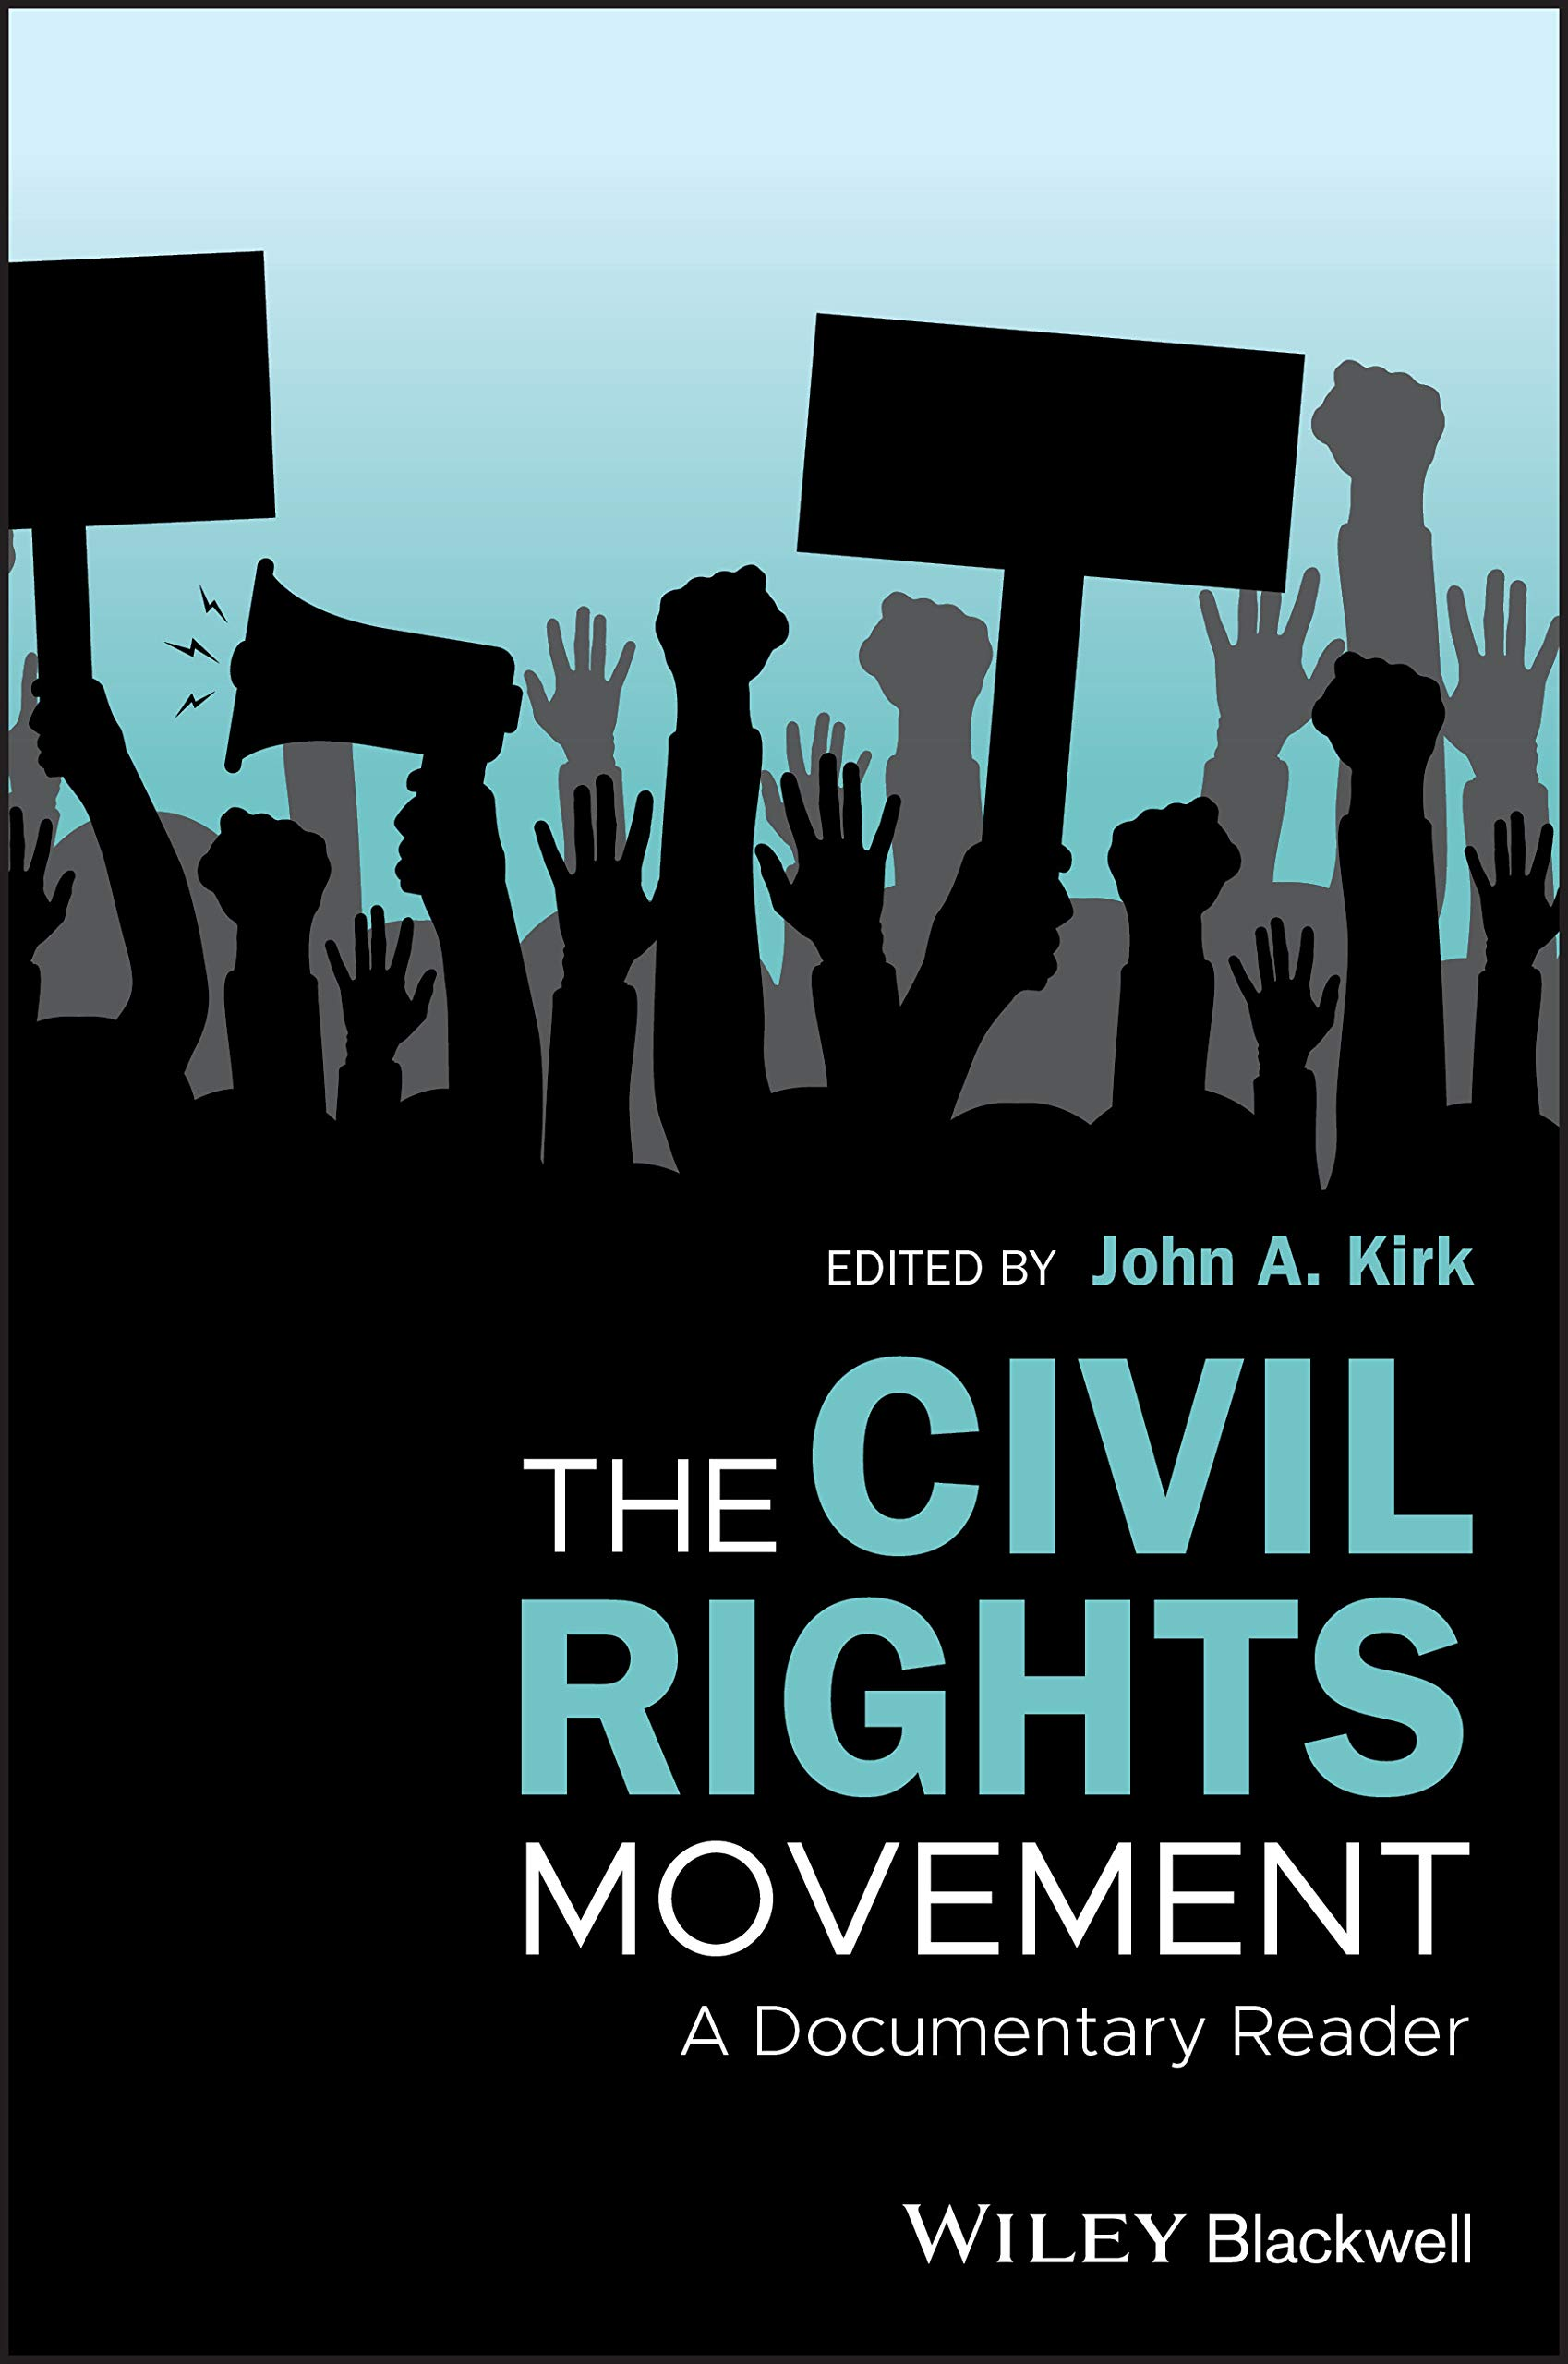 the civil rights movement a reader cover art